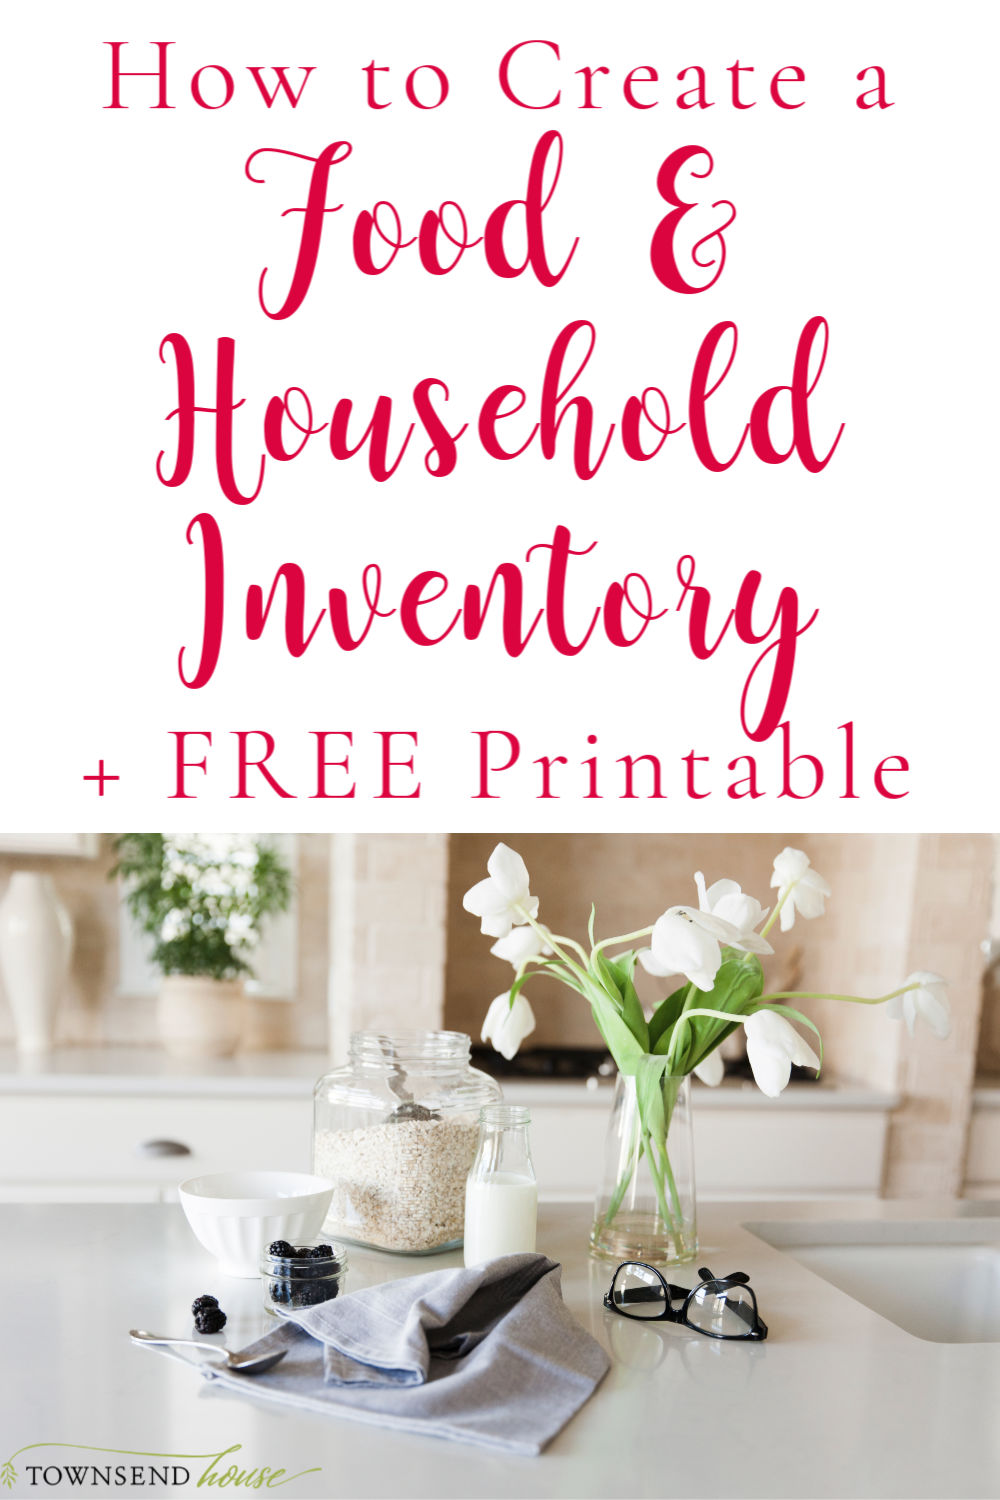 Learn how to create a food and household inventory and why it is important.  Plus grab a FREE Printable to help you start your new Food and Household Inventory!